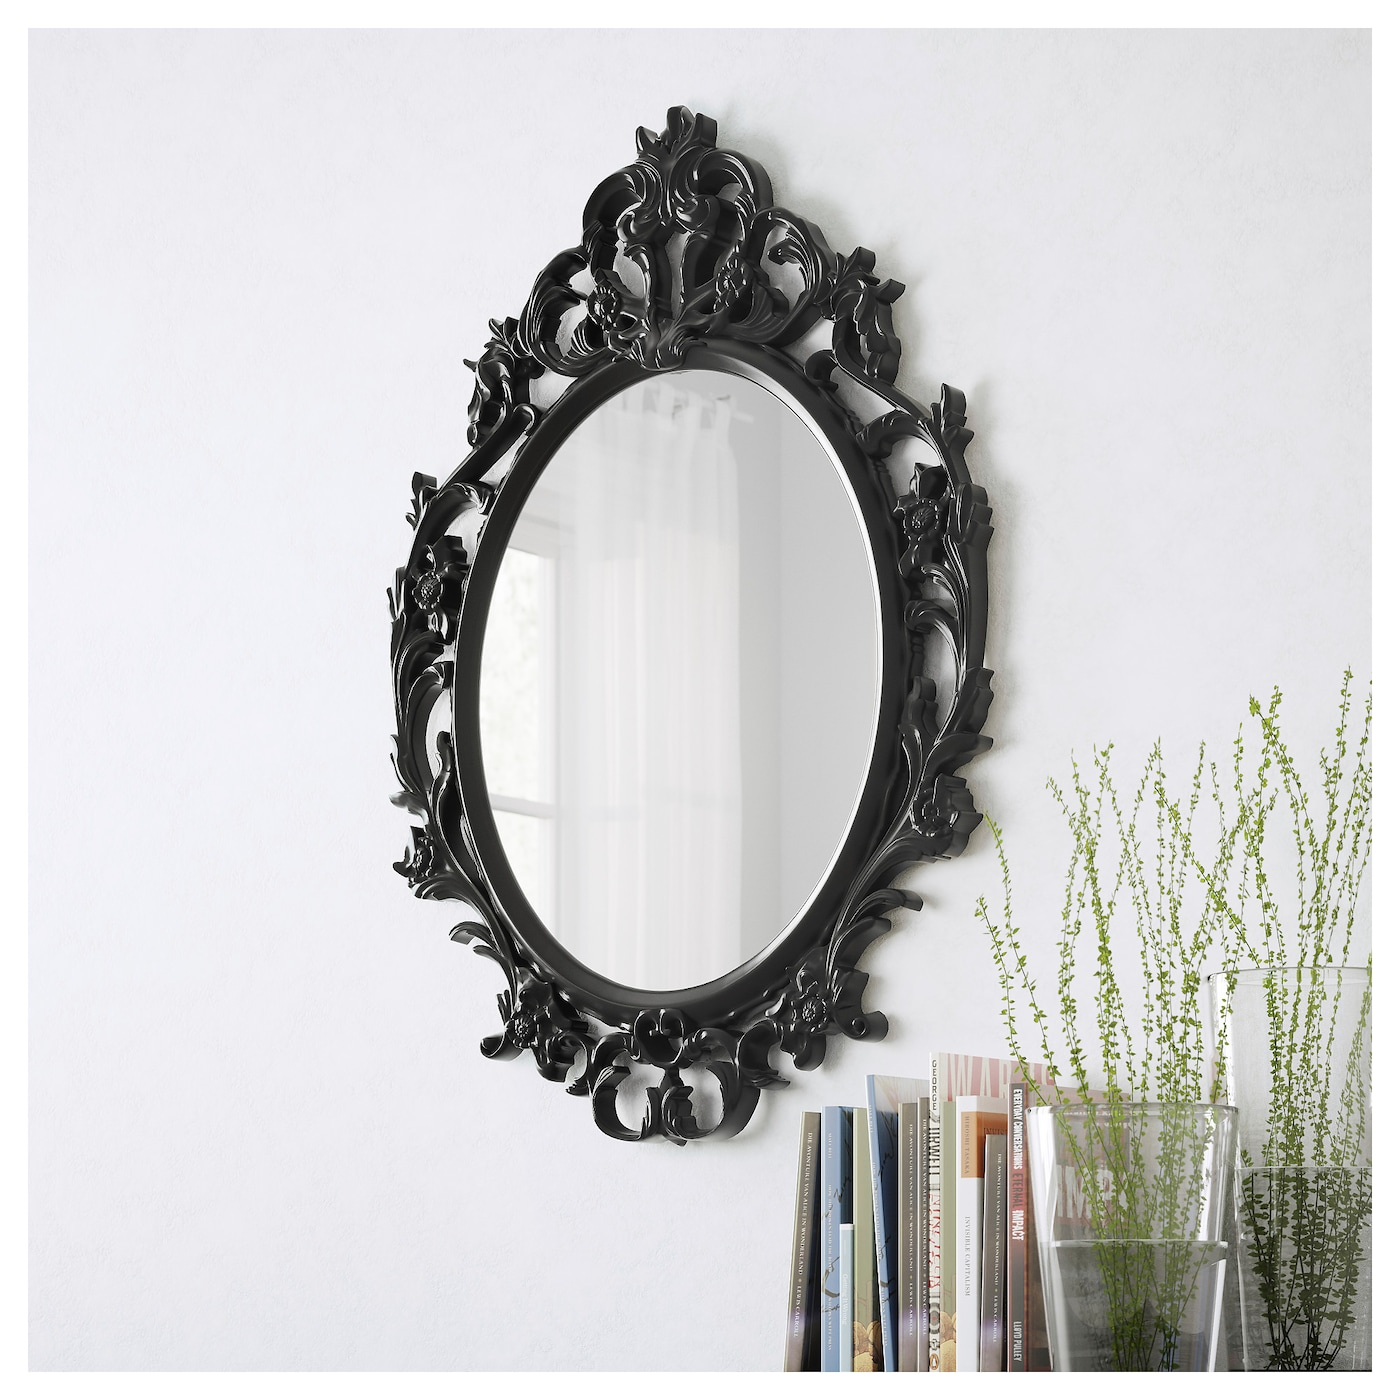 IKEA UNG DRILL mirror Suitable for use in most rooms, and tested and approved for bathroom use.